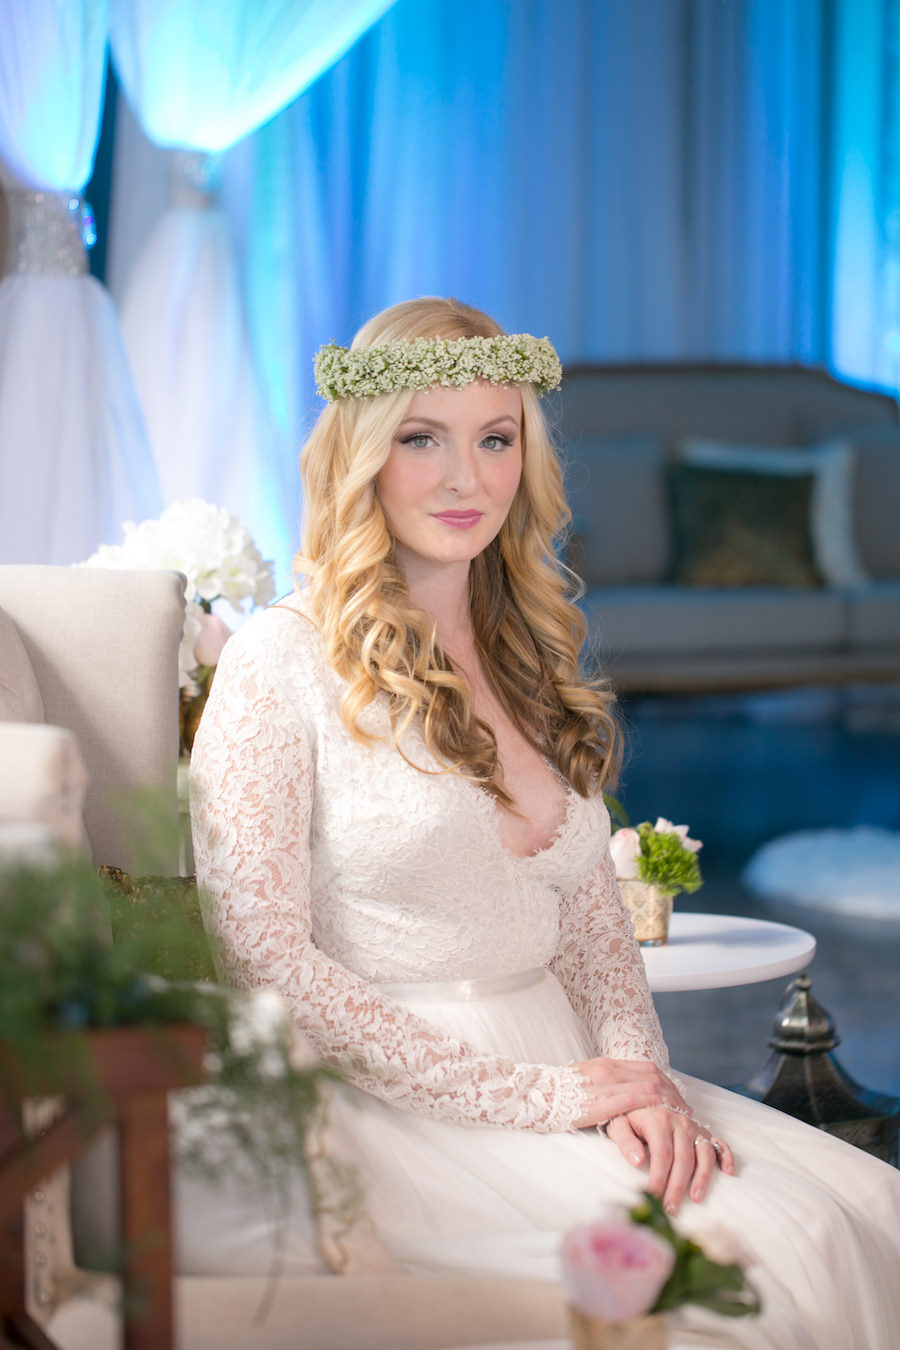 Boho Bride with Baby's Breath Floral Crown | Long Sleeved Lace Wedding Dress from the The Bride Tampa | Boho Wedding Reception Decor Ideas and Inspiration | Tampa Wedding Photographer Carrie Wildes Photography